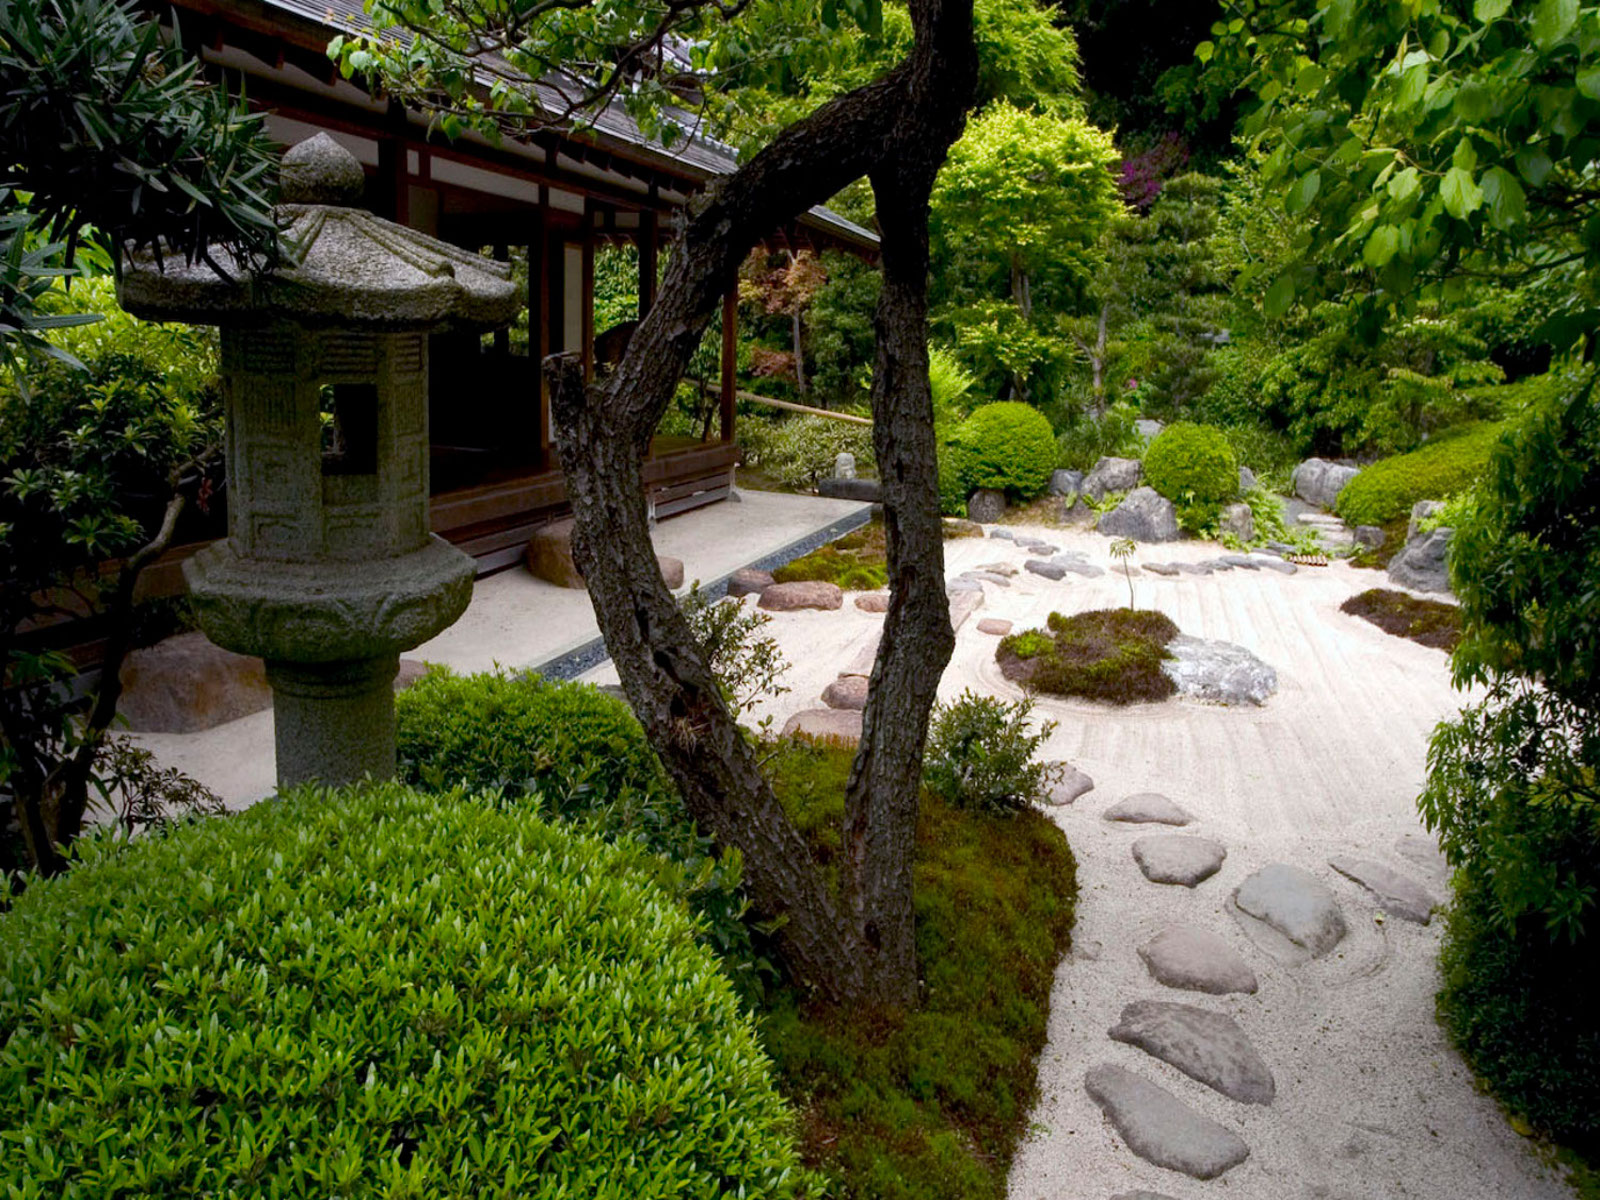 Zen garden wallpaper hd wallpaper pictures gallery - Japanese garden ...